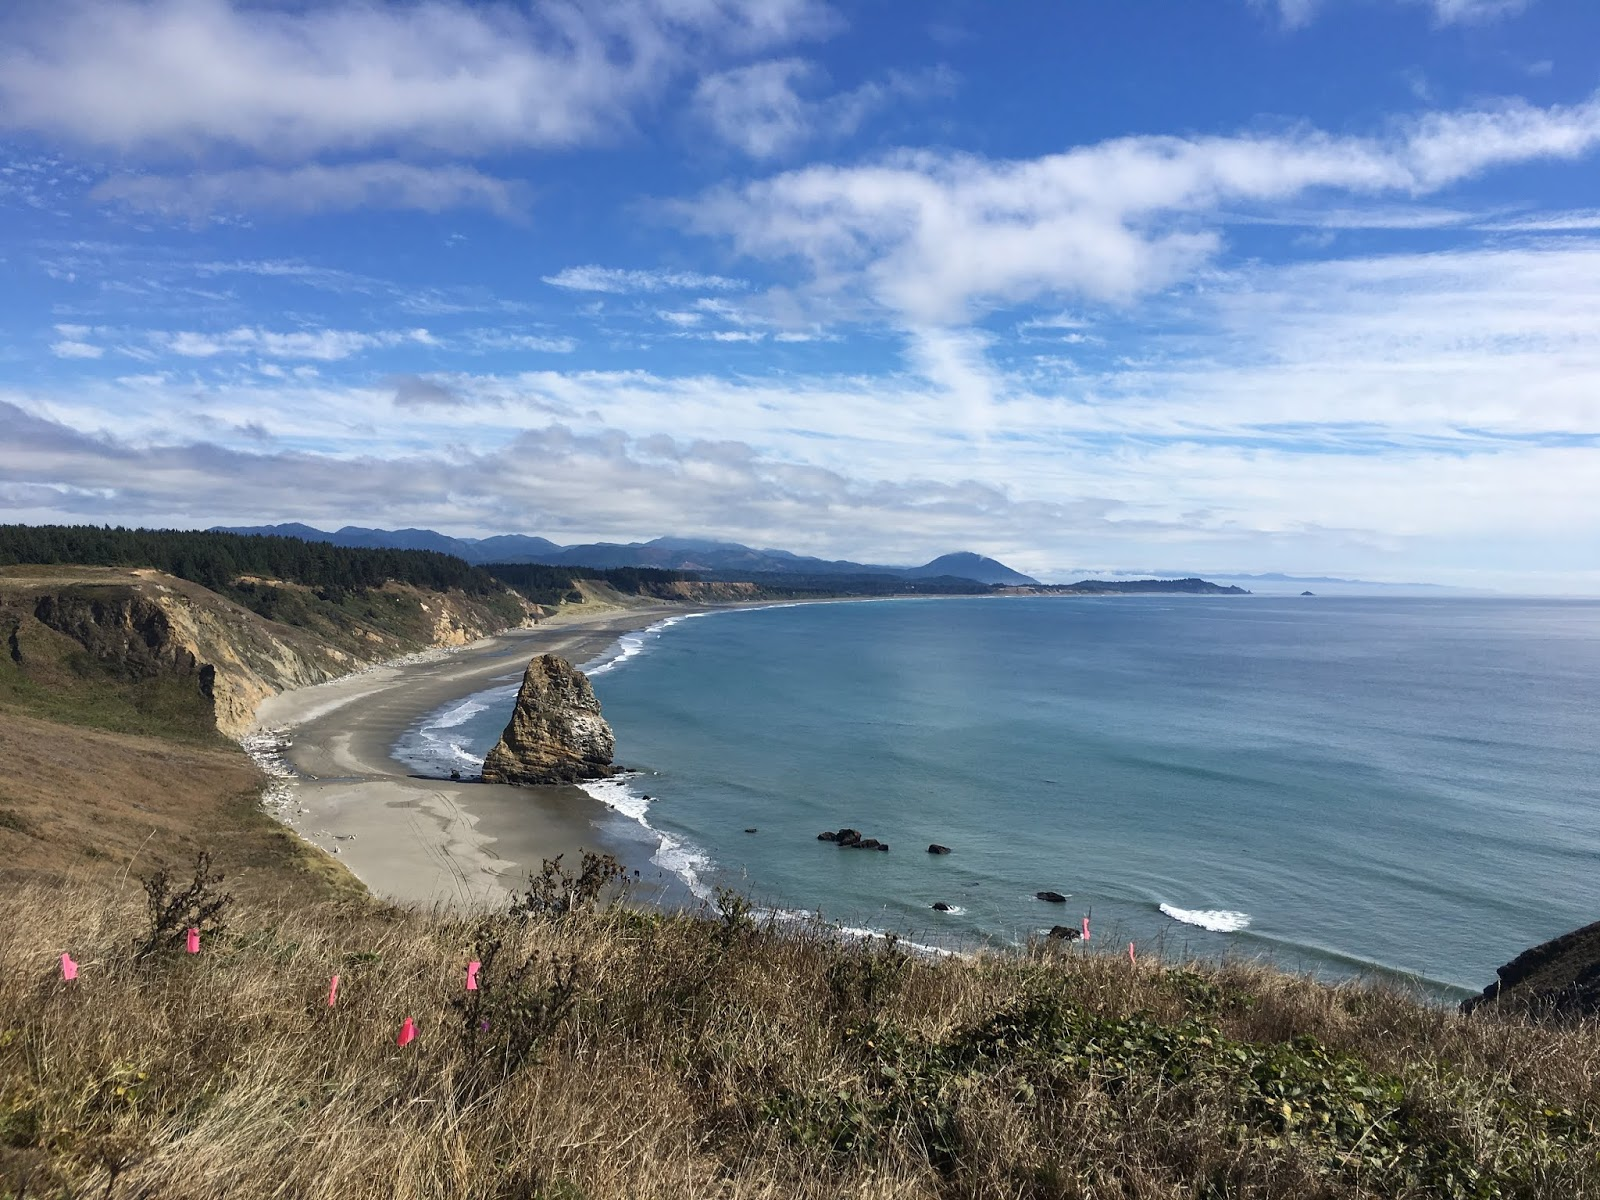 The Oregon Coast Part II: The Campgrounds